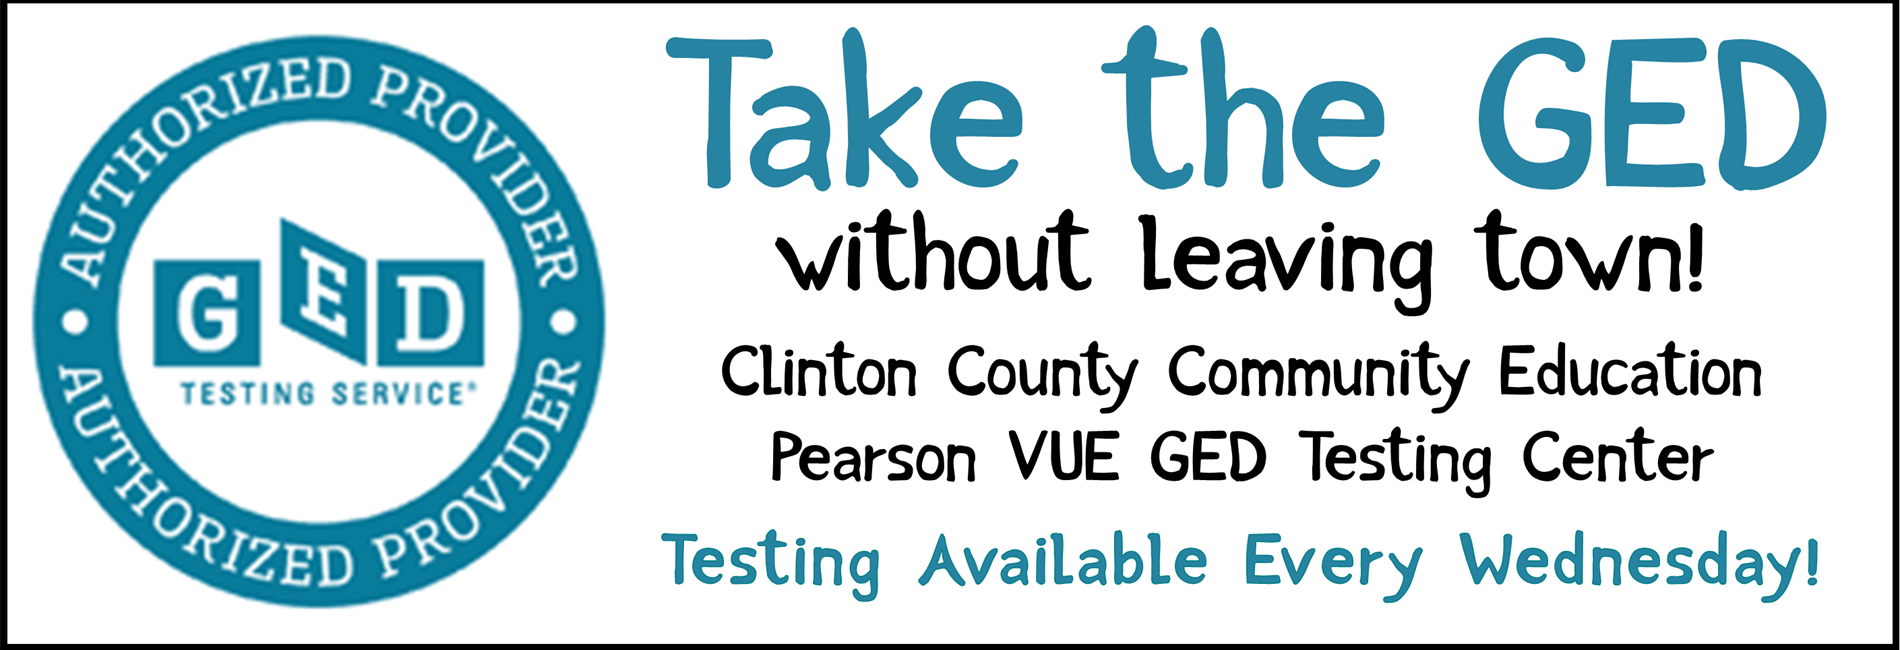 GED Testing Center ad